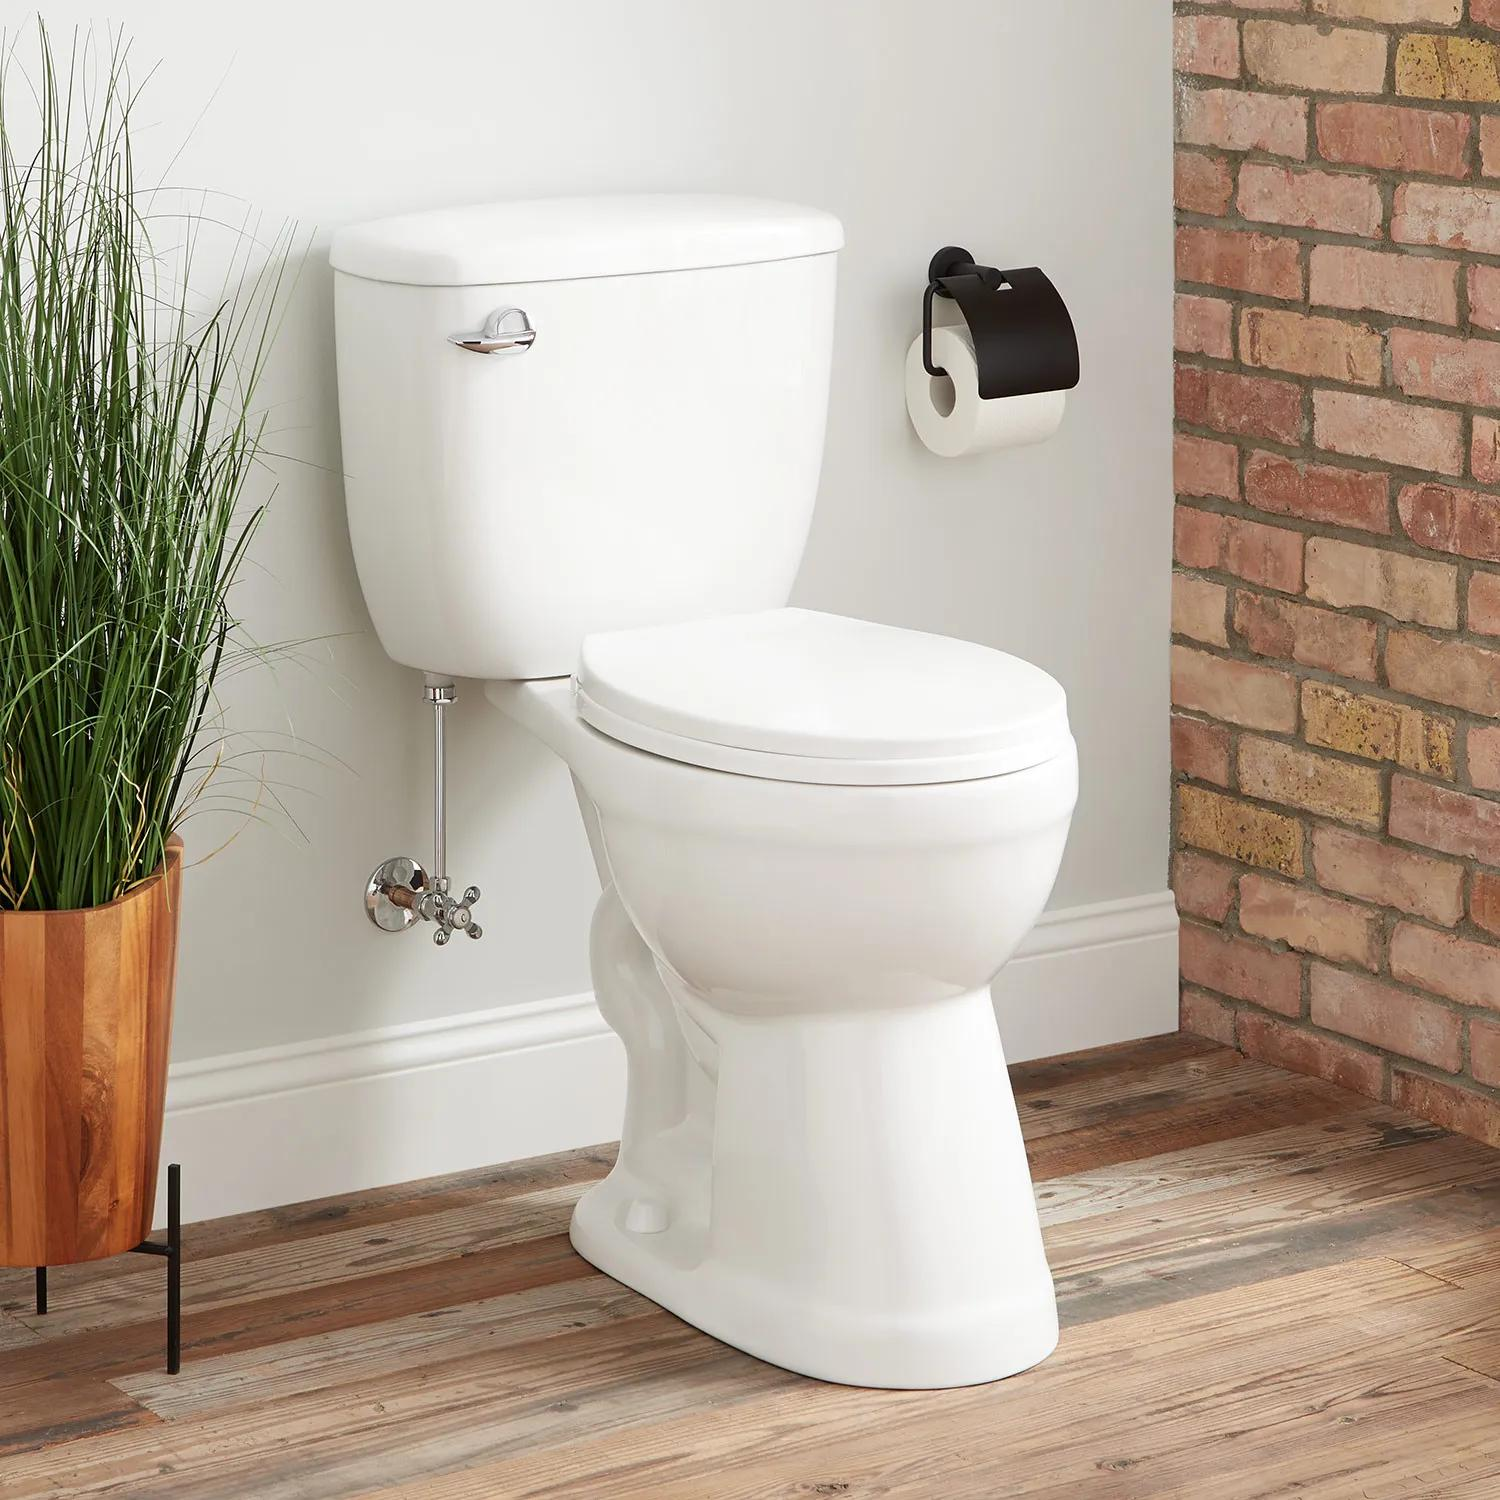 Stalnaker Siphonic Two Piece Round Toilet 19 Seat Height